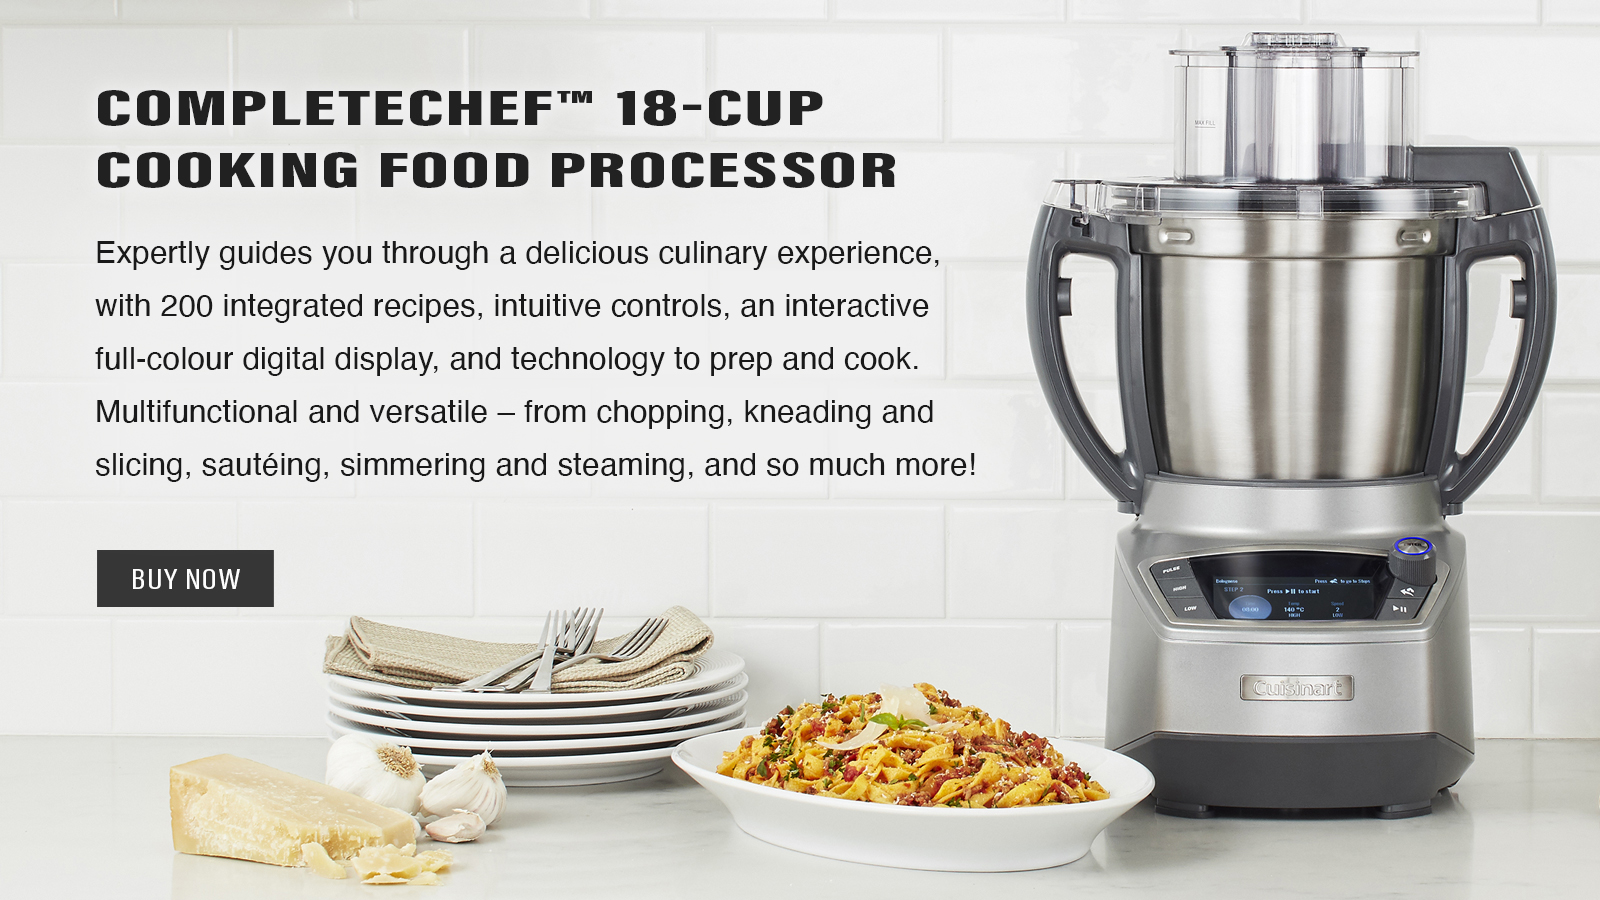 CompleteChef™ Cooking Food Processor